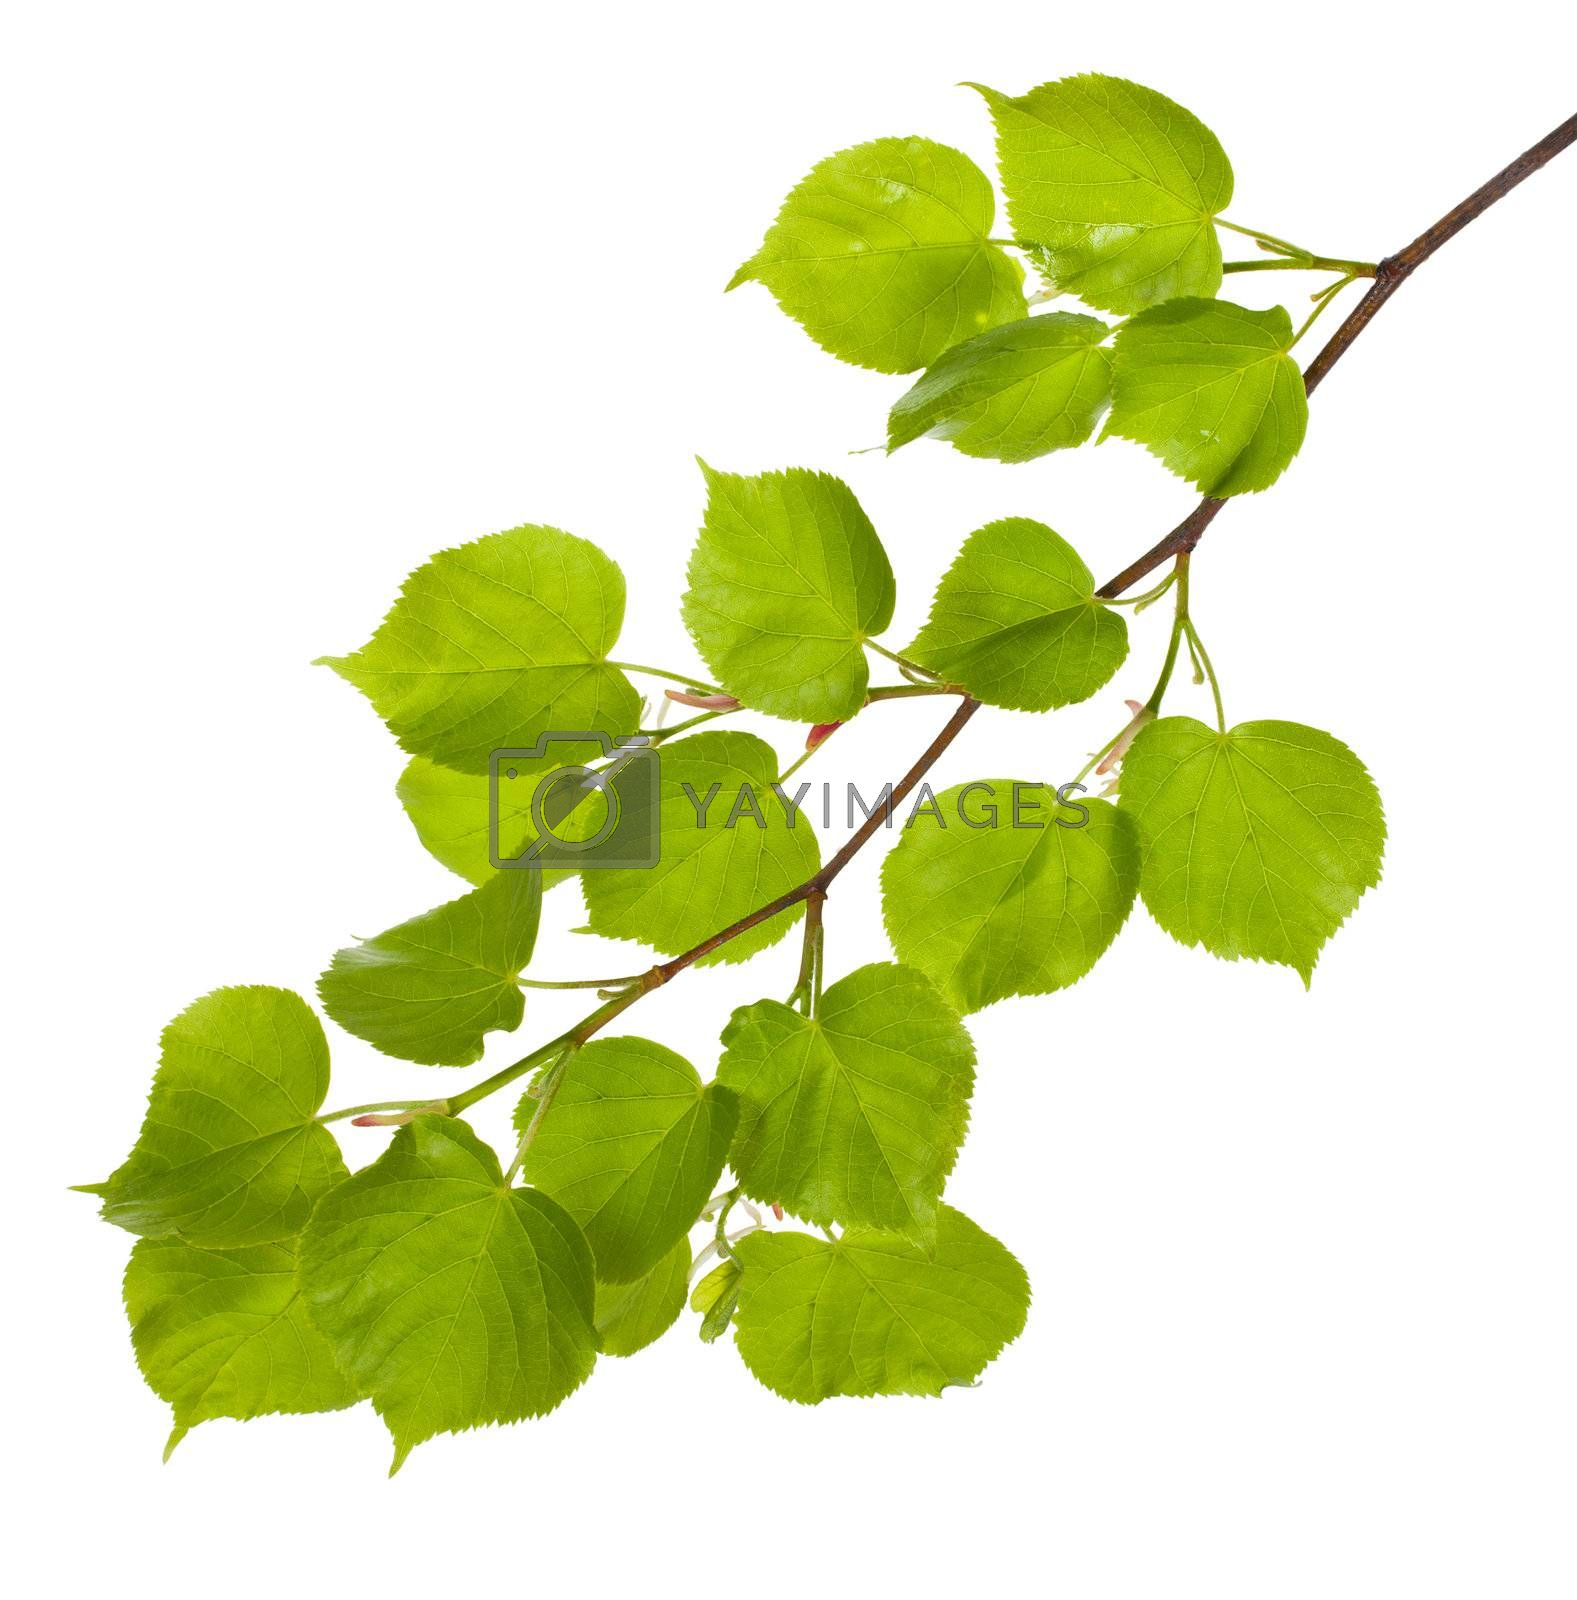 close-up linden branch with new leaves, isolated on white